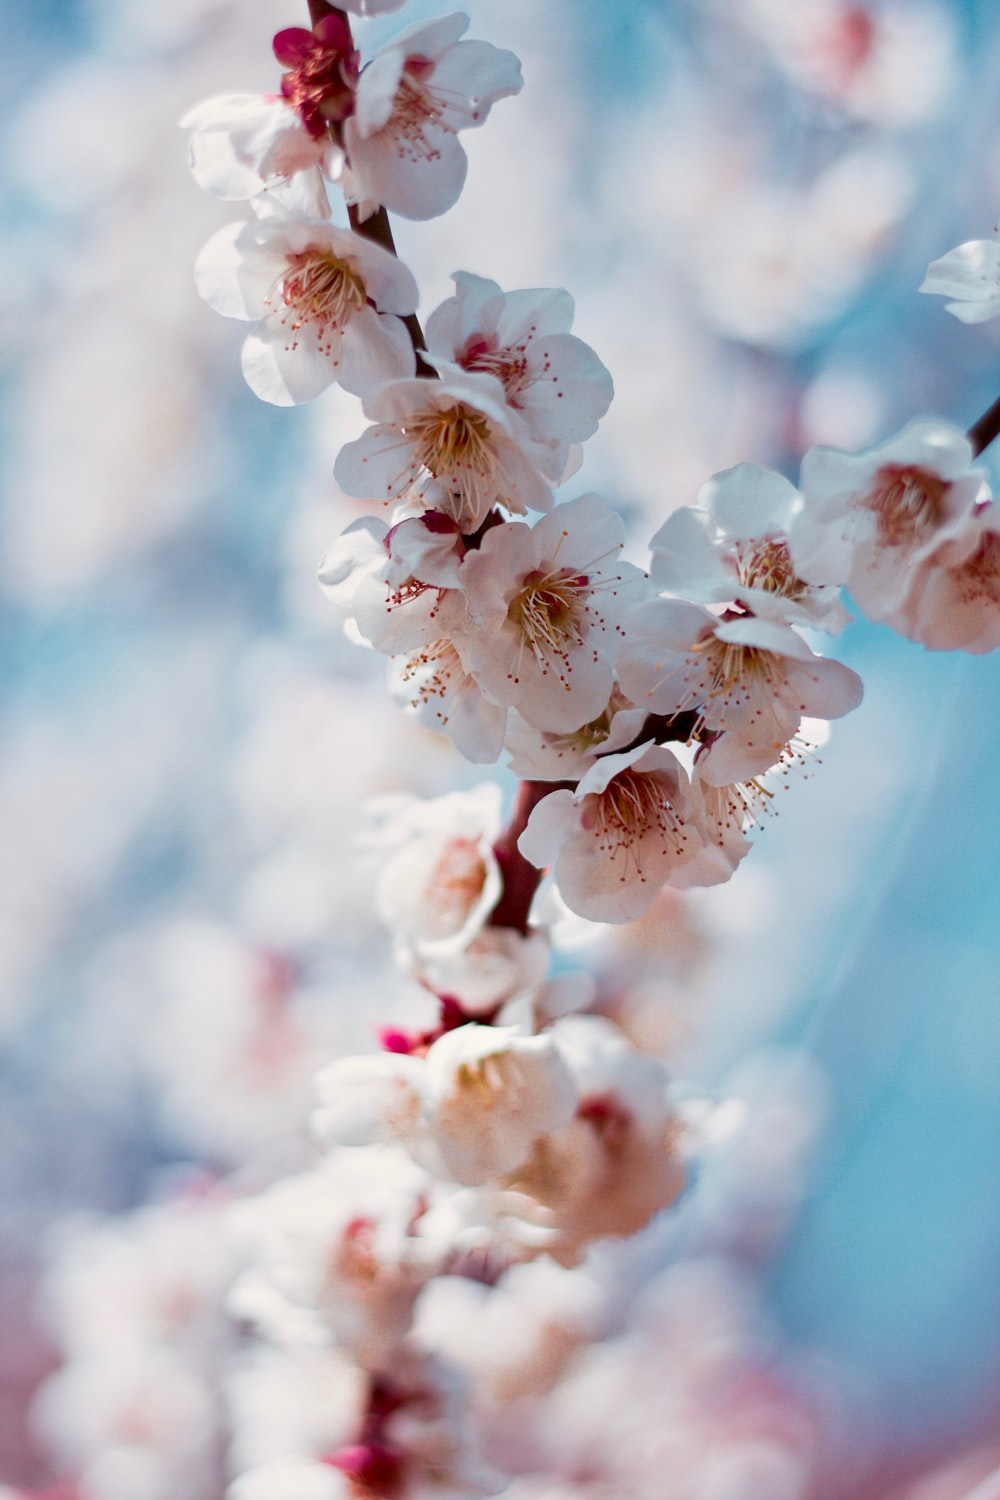 pink cherry blossom in selective-focus photography